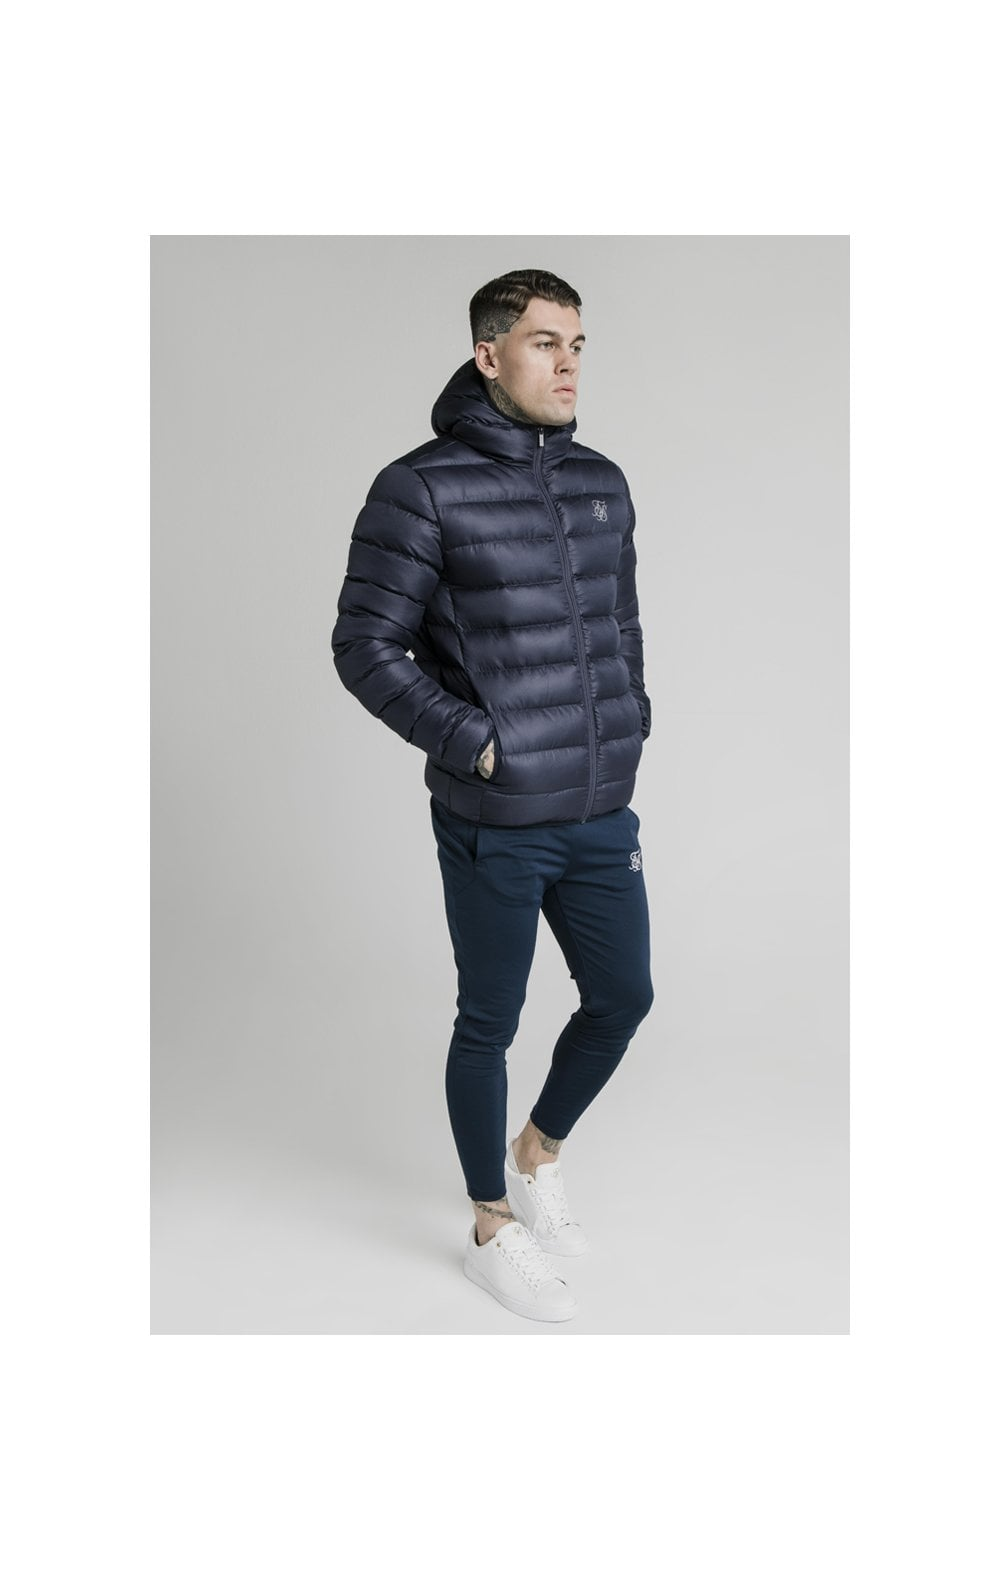 Load image into Gallery viewer, SikSilk Atmosphere Jacket - Navy (2)